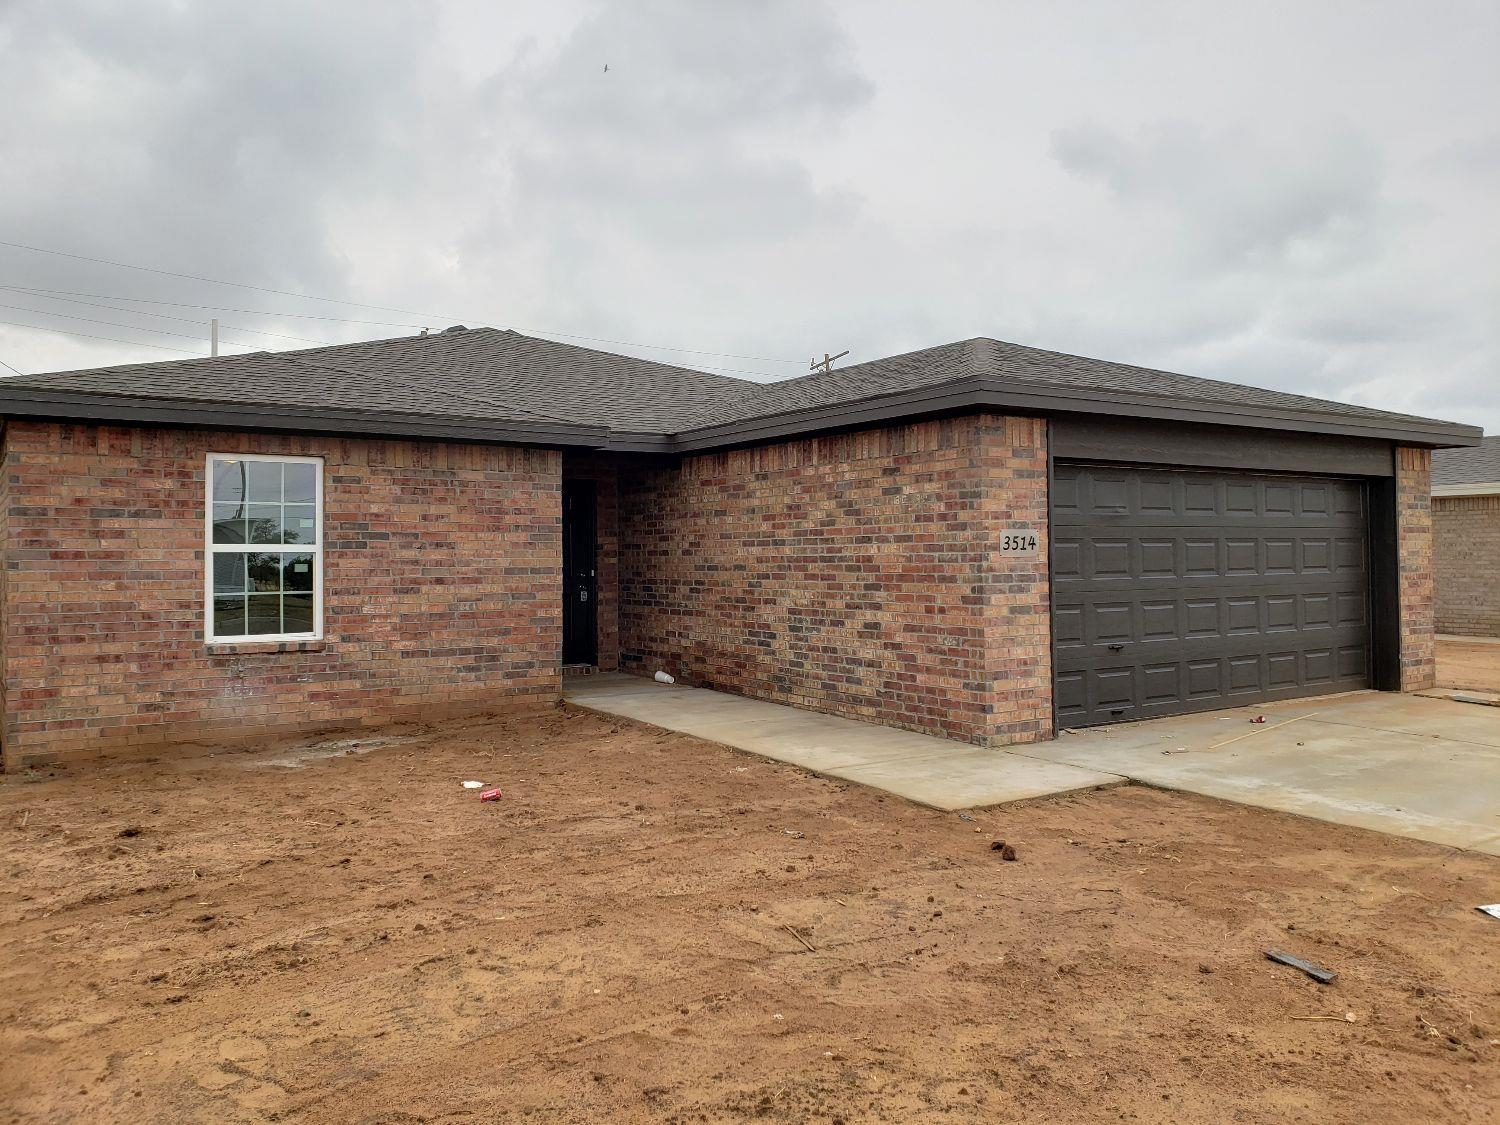 Another new construction home by Hargrove Homes! Charming 3/2/2 with spacious master suite featuring 2 great master closets! Wonderful kitchen with island peninsula, stainless appliances, and pantry. Living area is open to kitchen and eating area. Beautiful brick exterior and fenced back yard. You are going to love this quality home with terrific floorplan! Don't delay ... call today!